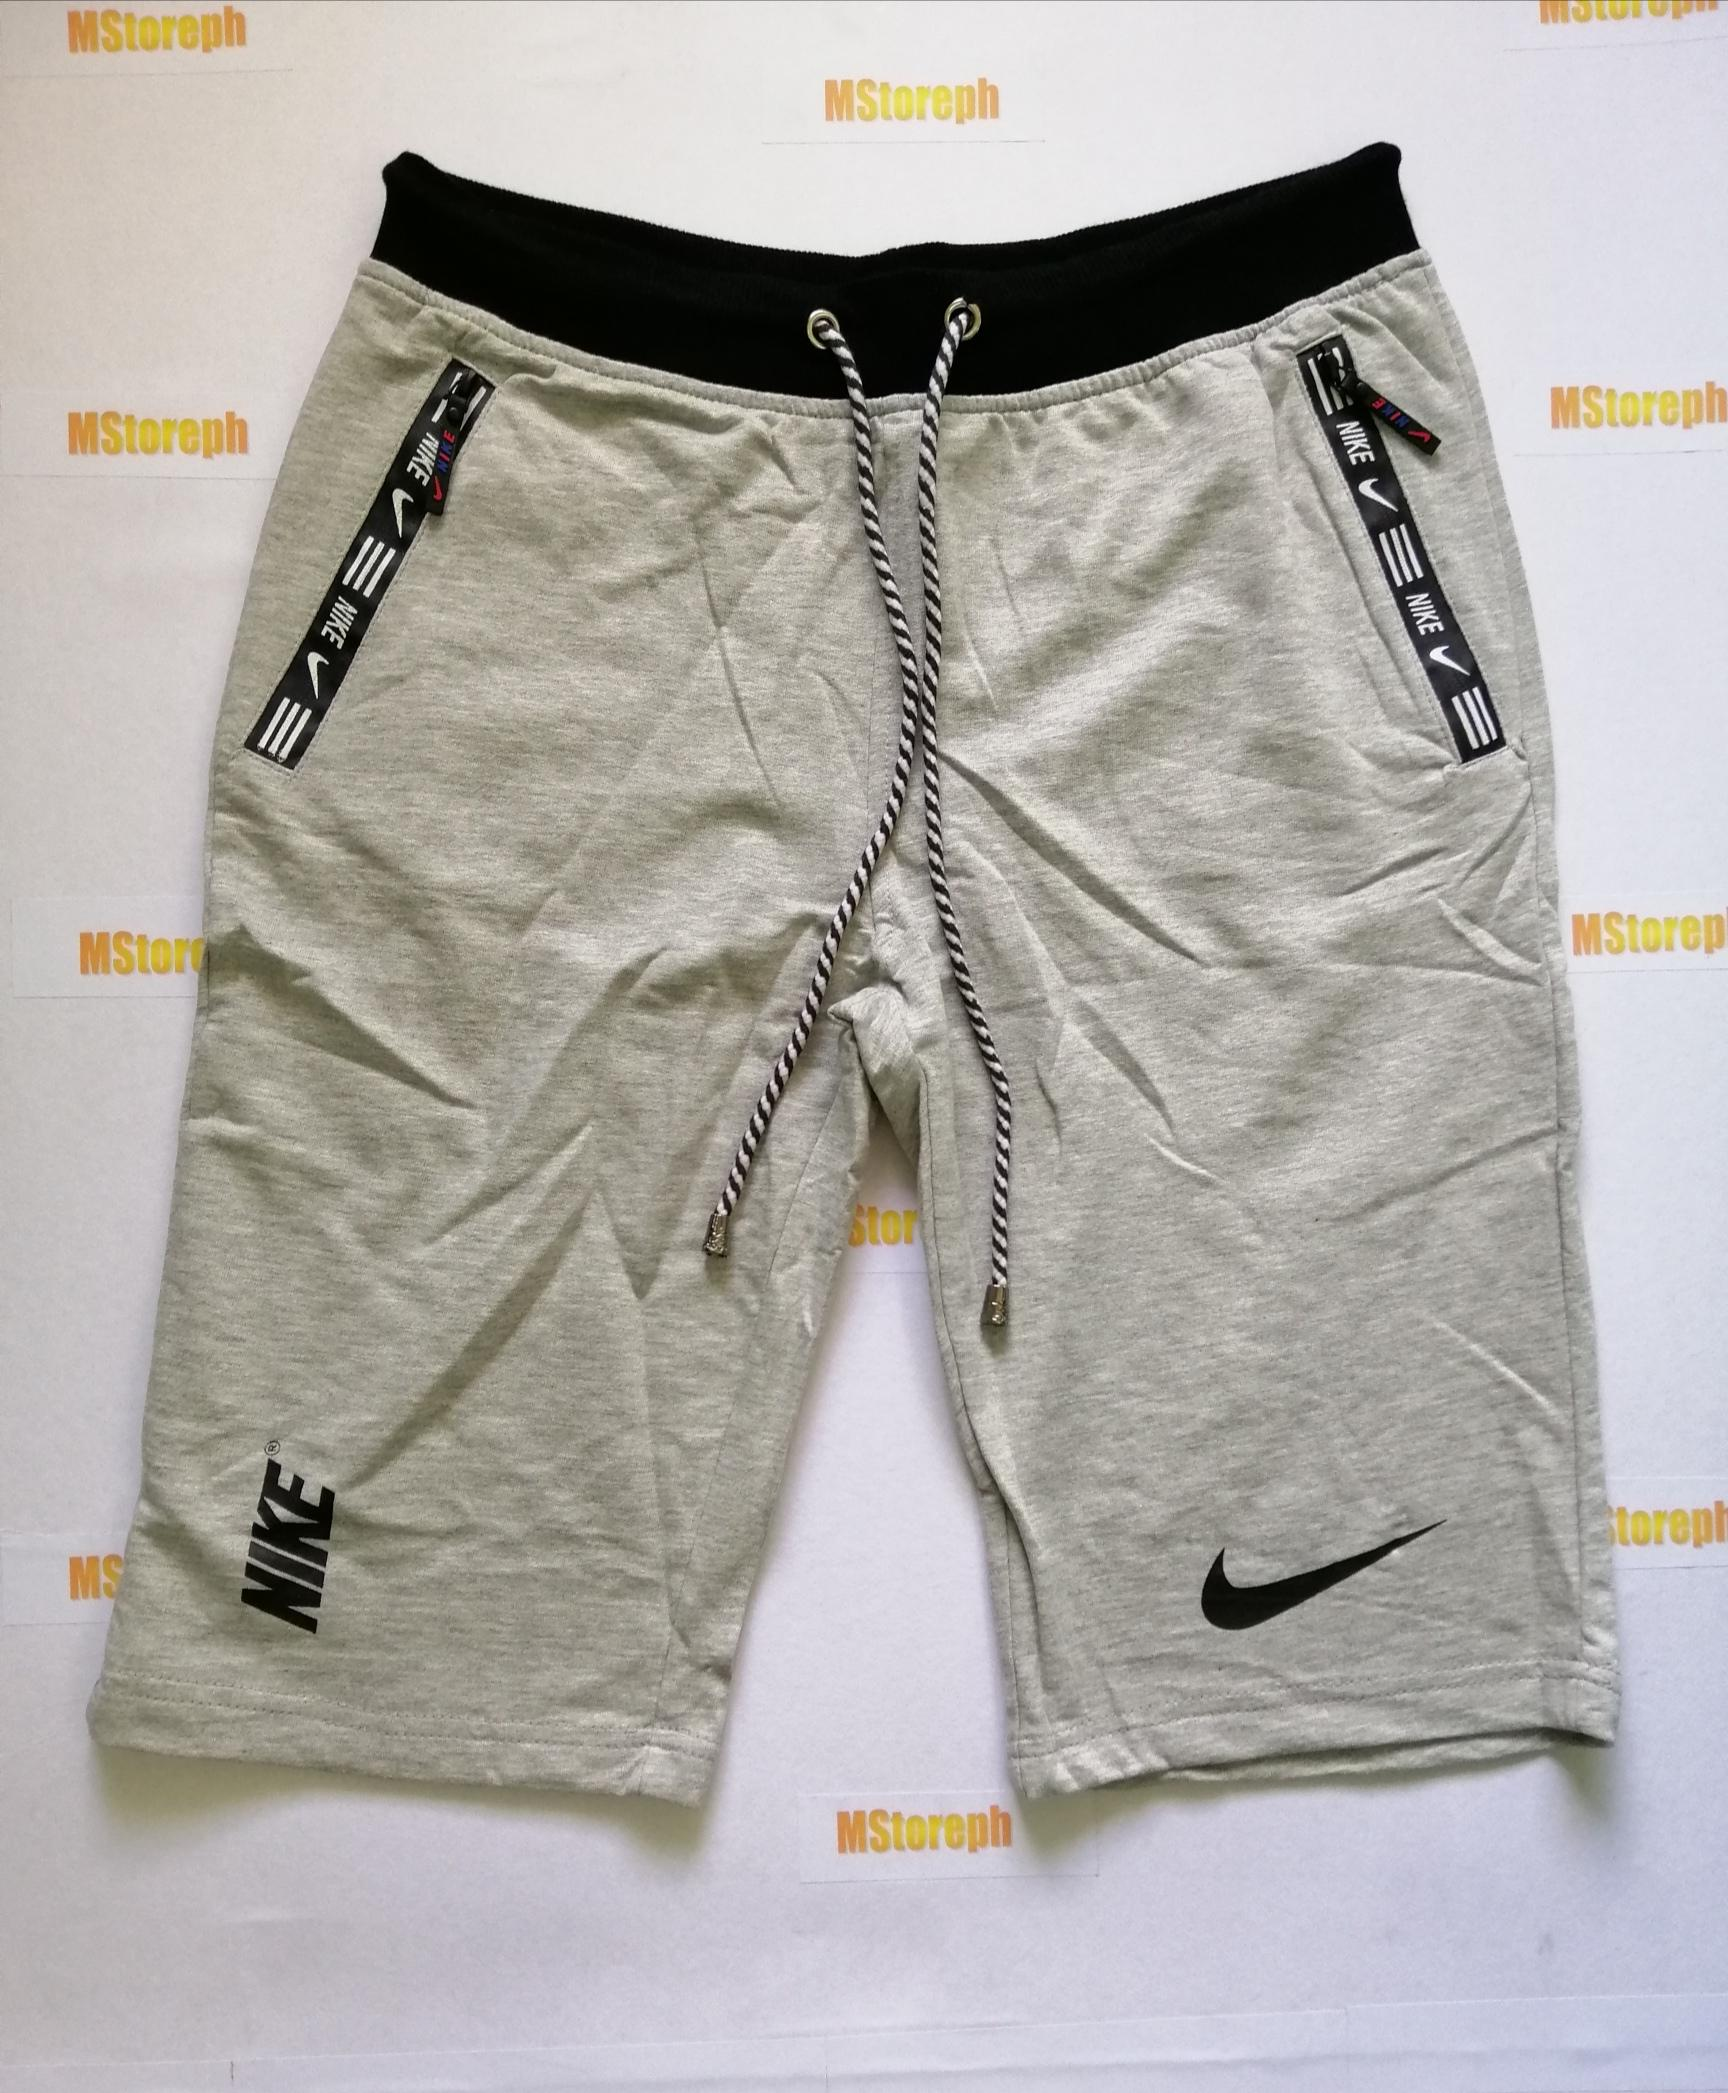 Branded Mens Shorts Overrun By Mstoreph.